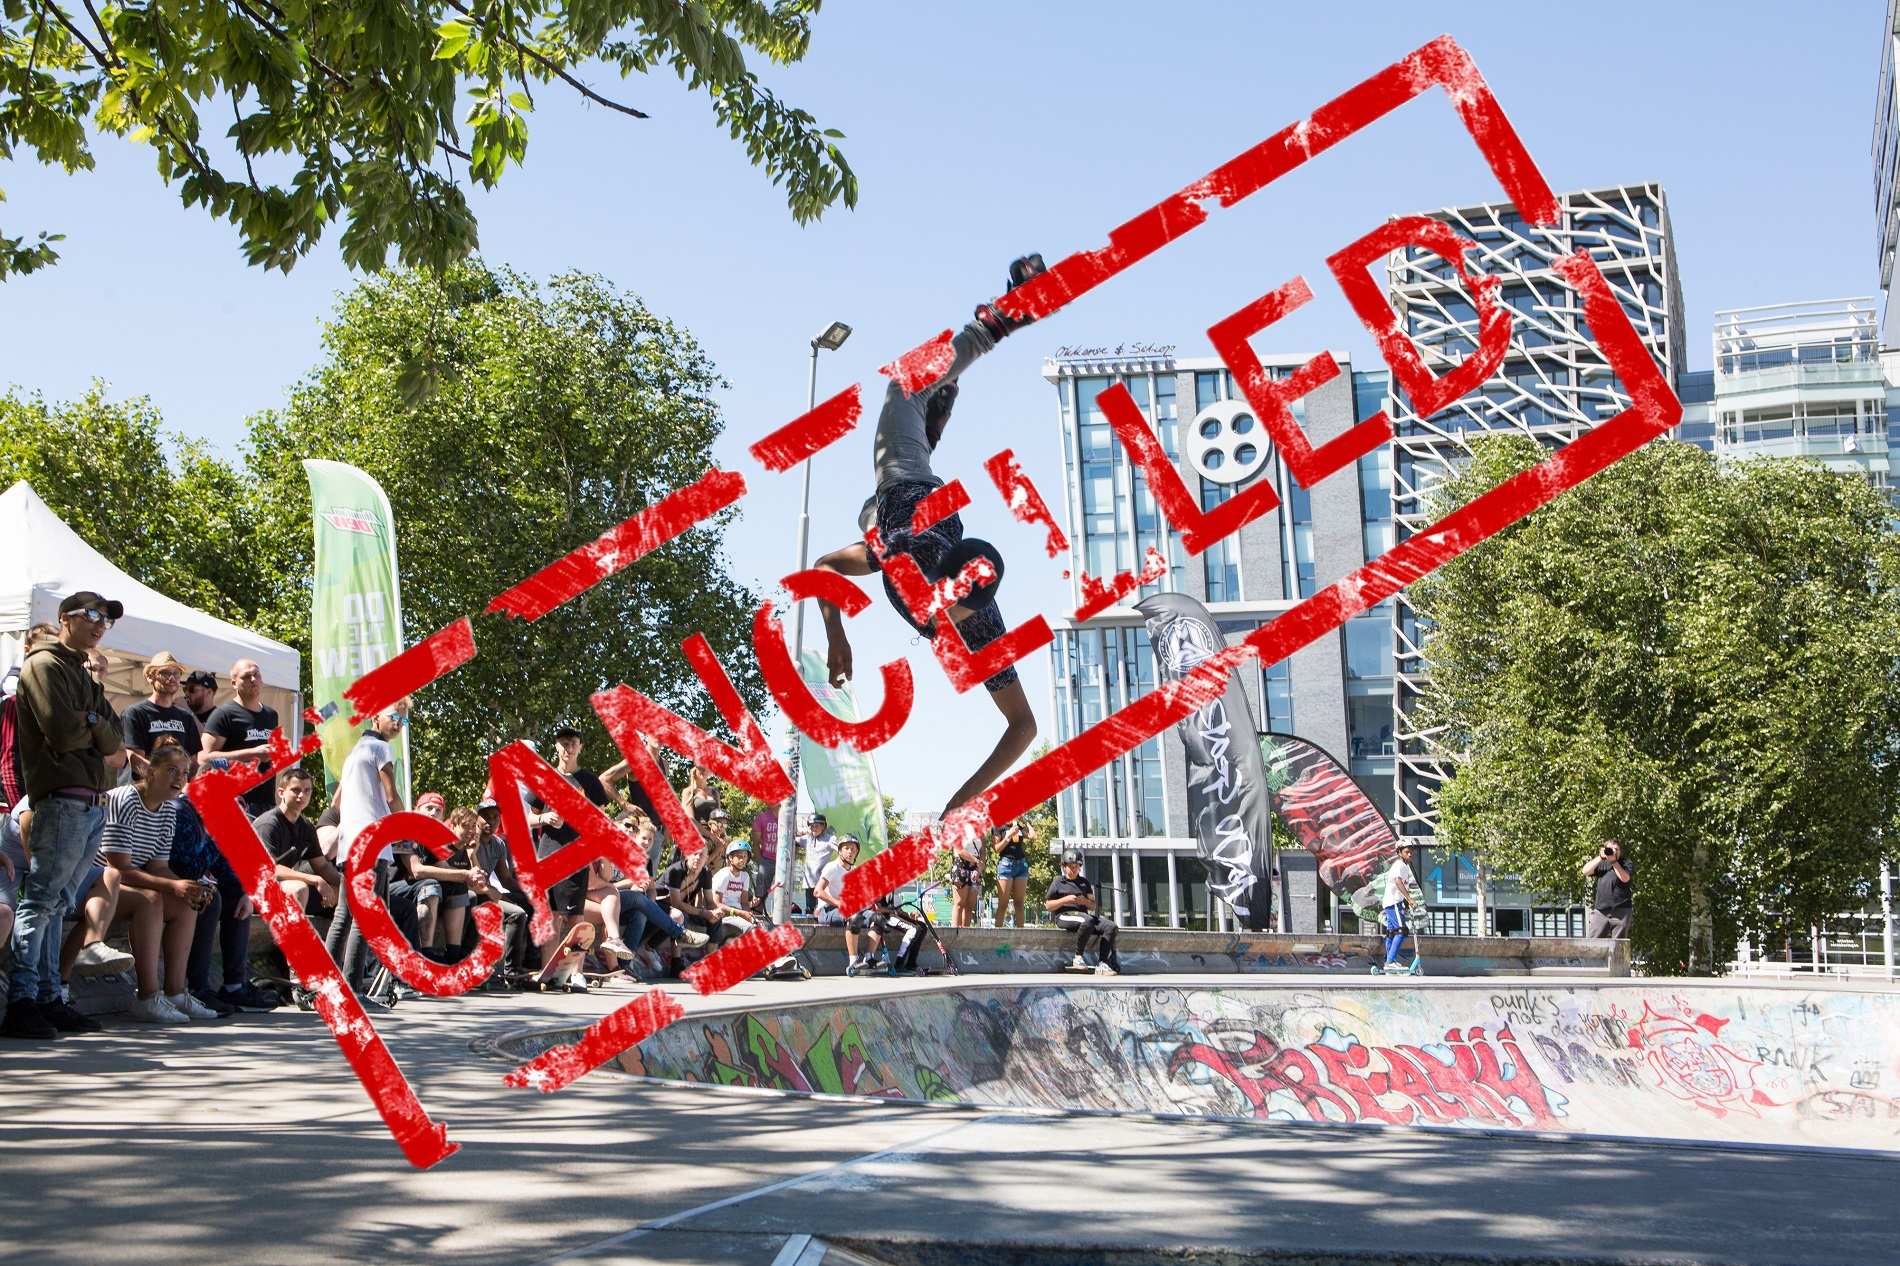 Aantal events skateparktour Own the Spot gecanceld